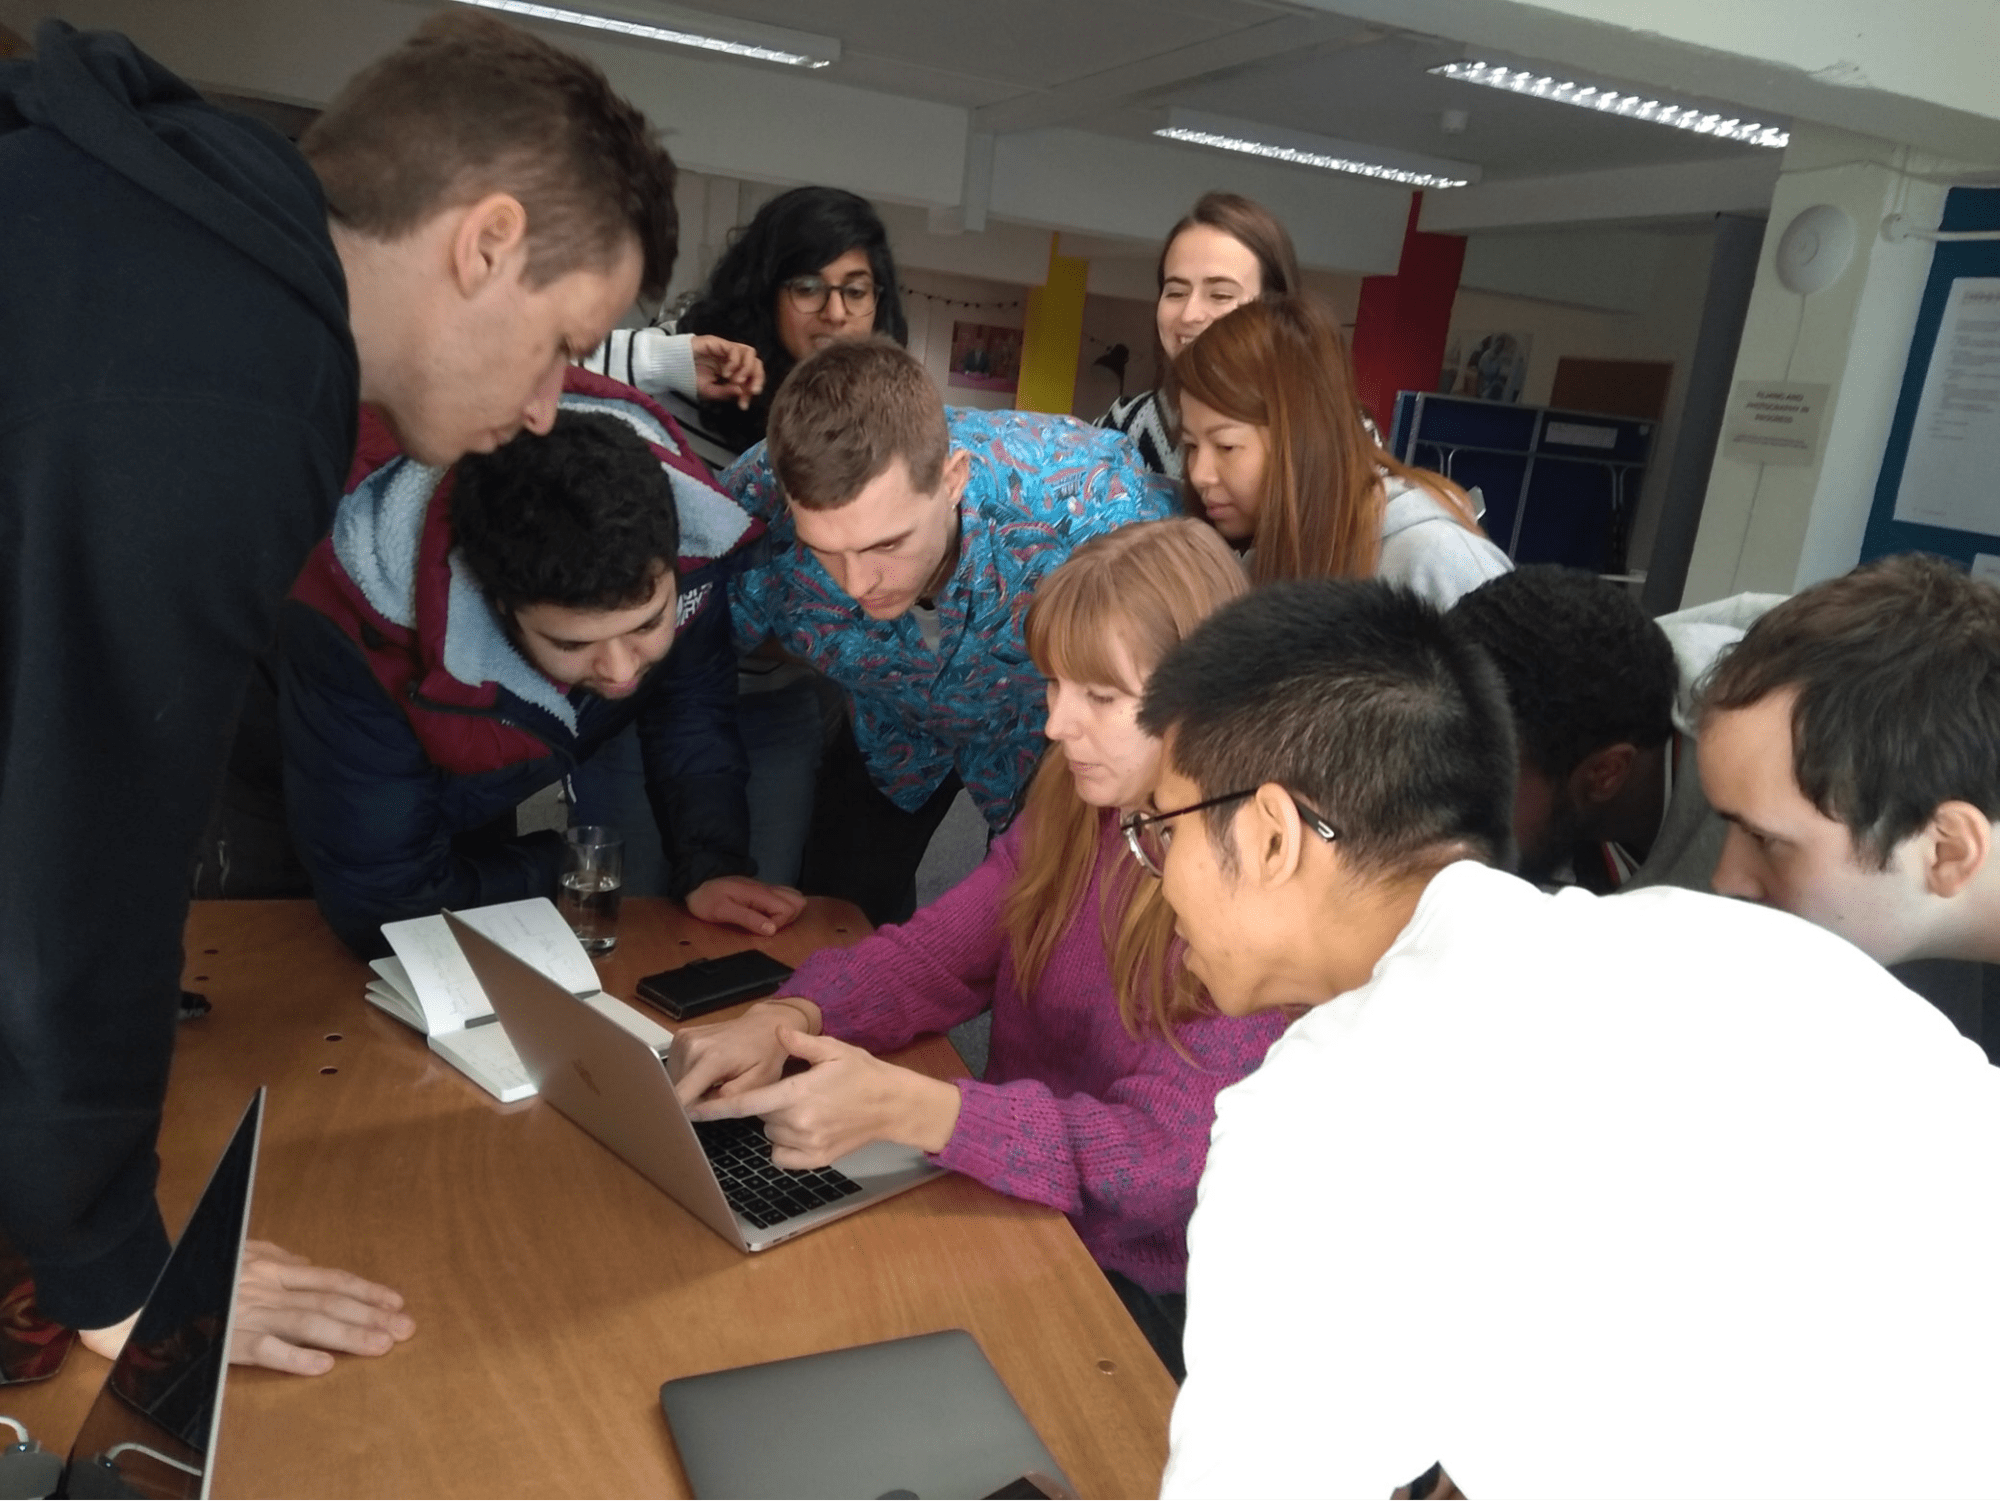 Ten developers huddled around a laptop using mob programming to solve a problem together.